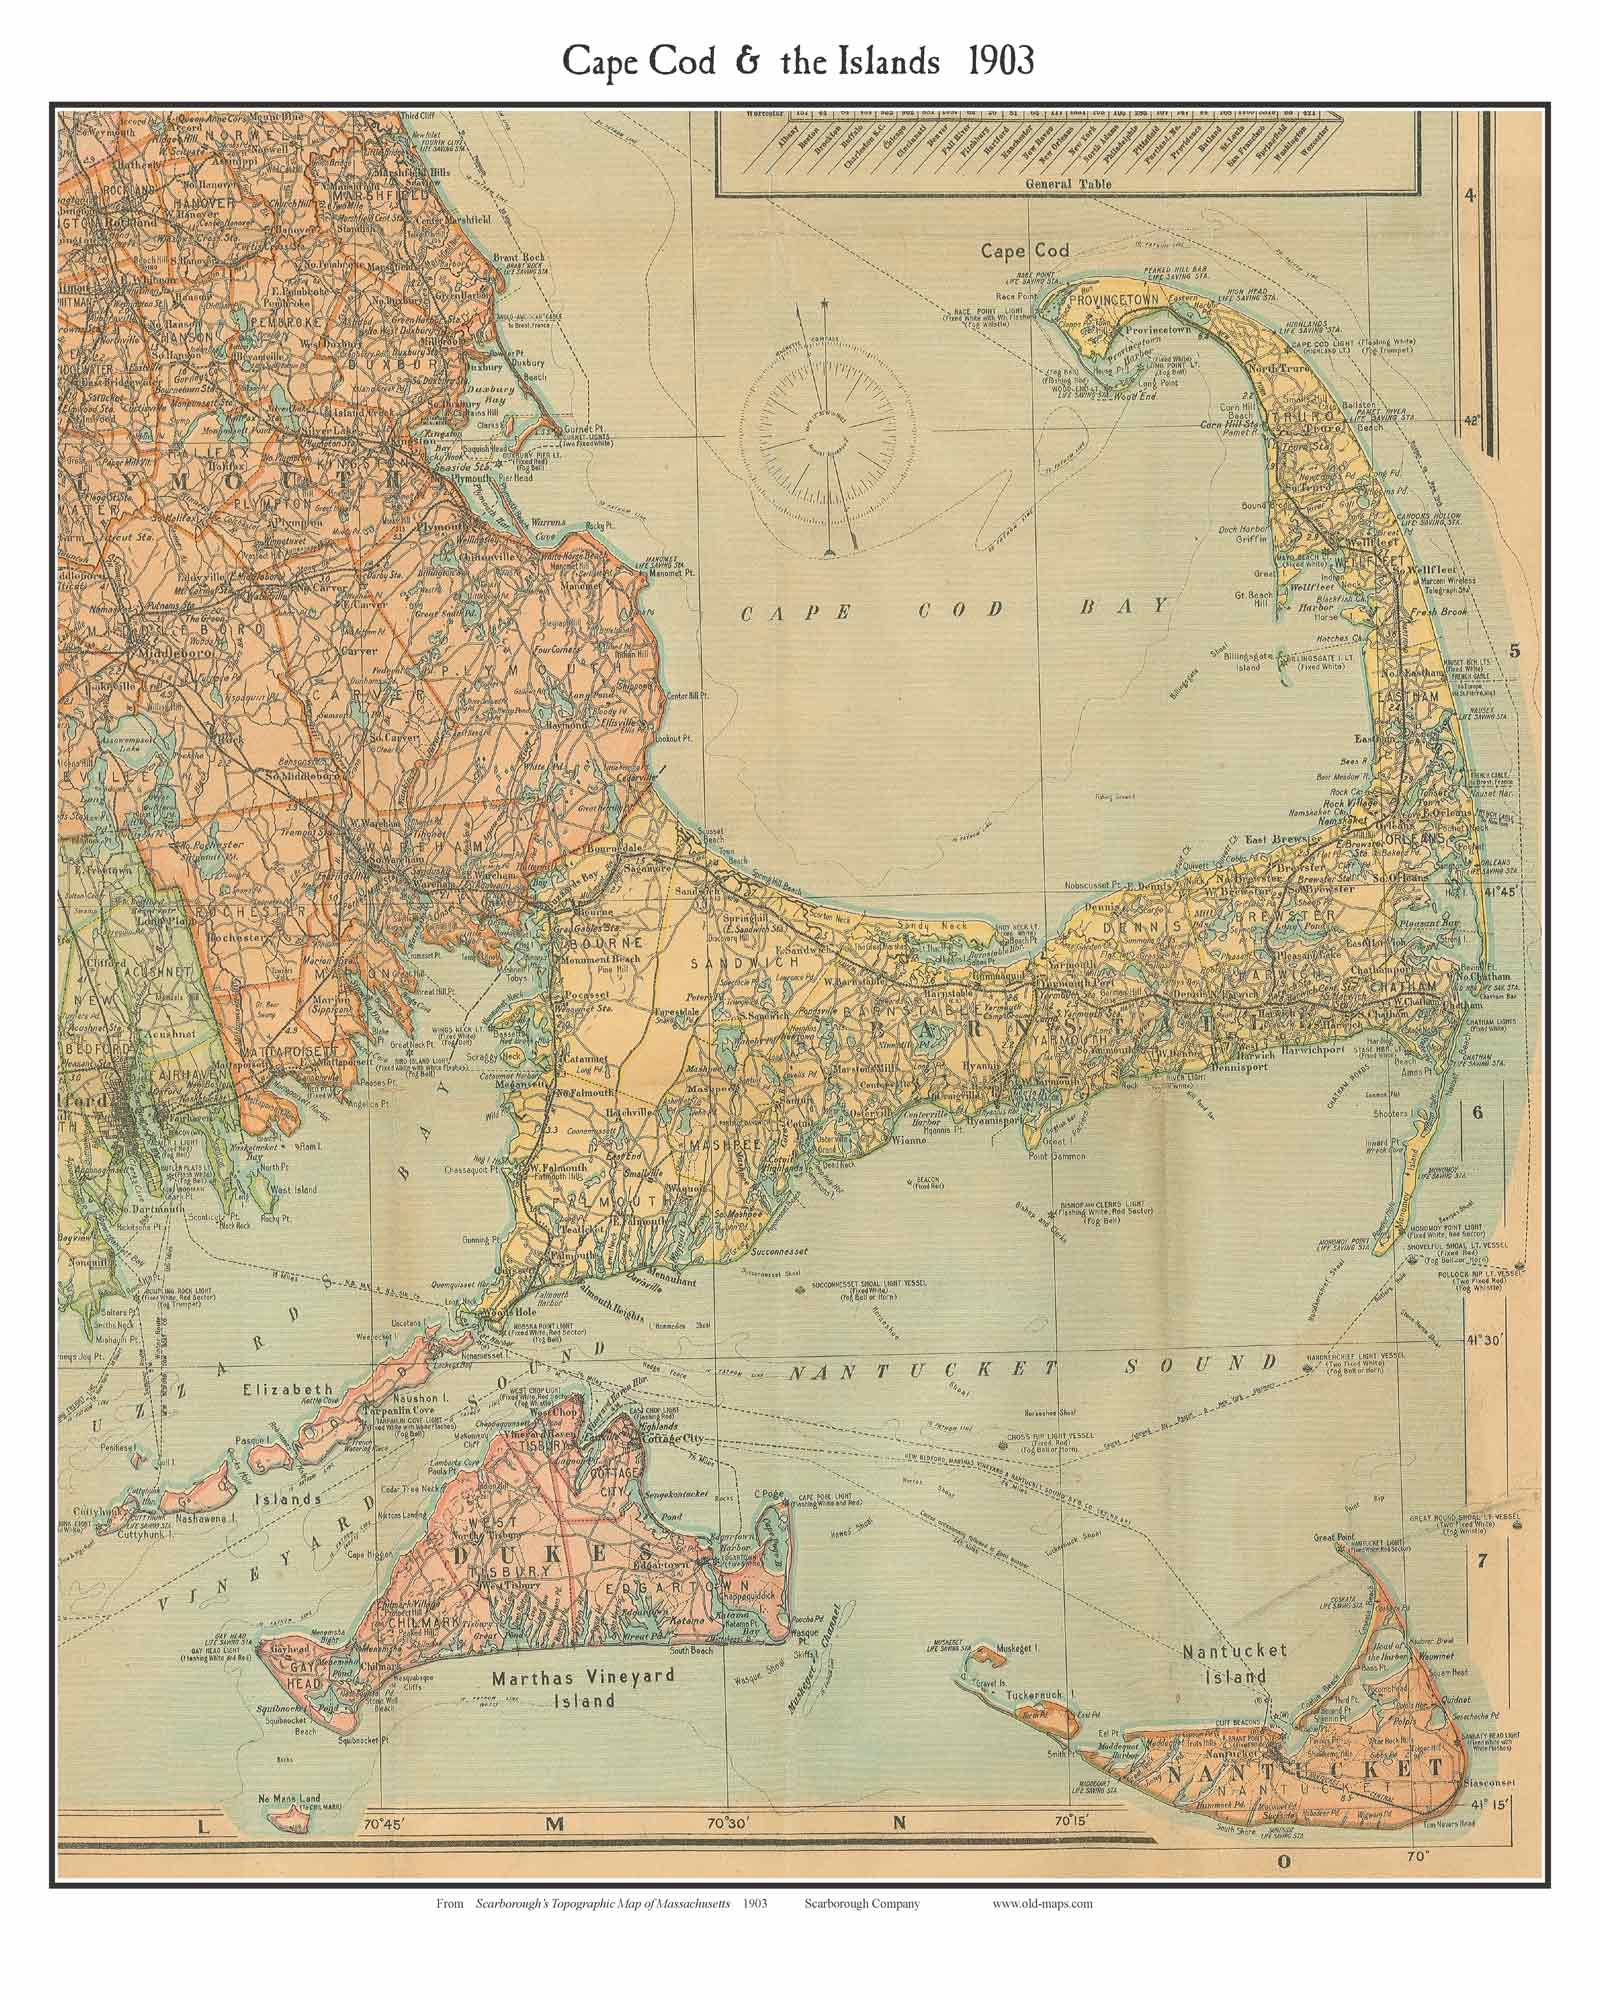 Cape Cod 1903 Scarborough - Old Map Custom Print - OLD MAPS